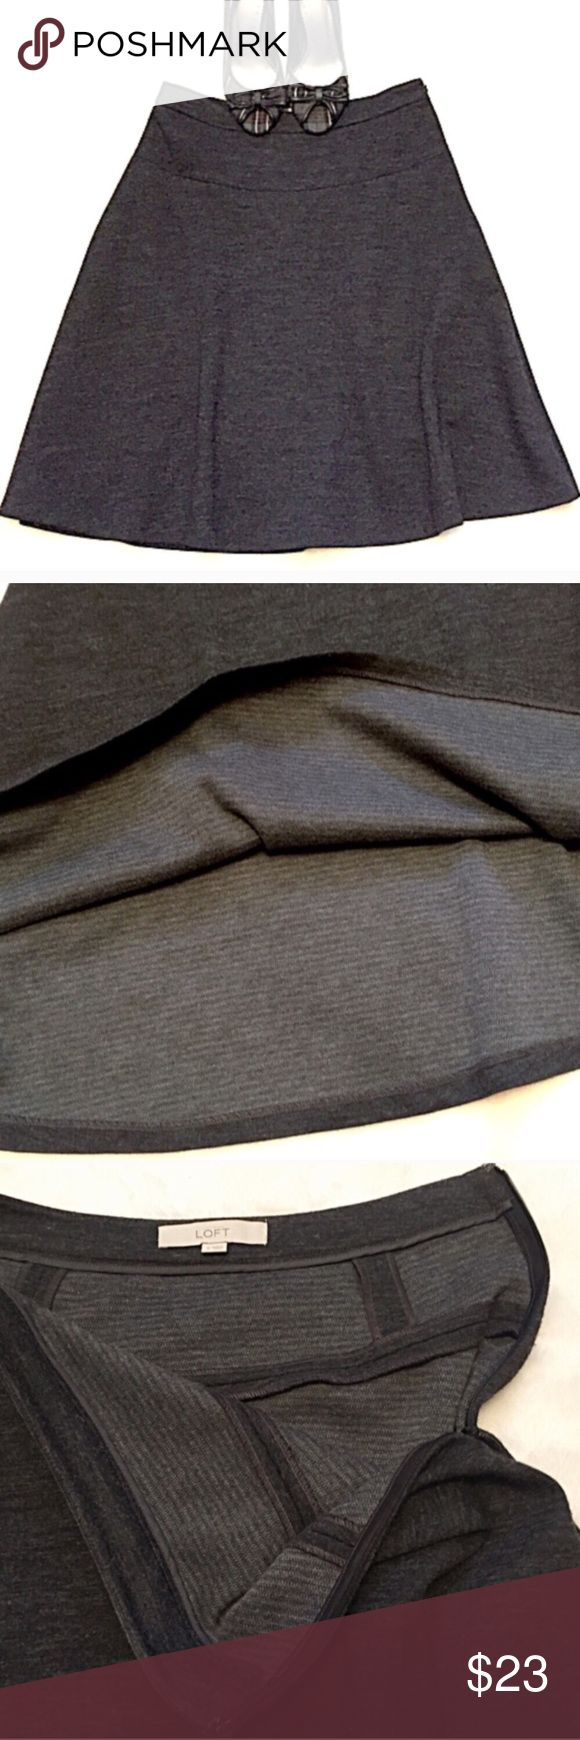 "❣️BOGO 1/2 off❣️🆕 LOFT A line wool gray skirt 4 Beautiful charcoal gray color. Super soft & not itchy wool blend. Size 4.  23"" long & 29""waist. Side zip & hook closure. Flawless condition. Freshly dry cleaned. ✖️I do NOT MODEL✖️ 🔴Bundle your likes for a custom private offer. 🔴NO TRADES. 🔴REASONABLE offers welcome via offer button. Smoke free home. Fast shipping! LOFT Skirts A-Line or Full"